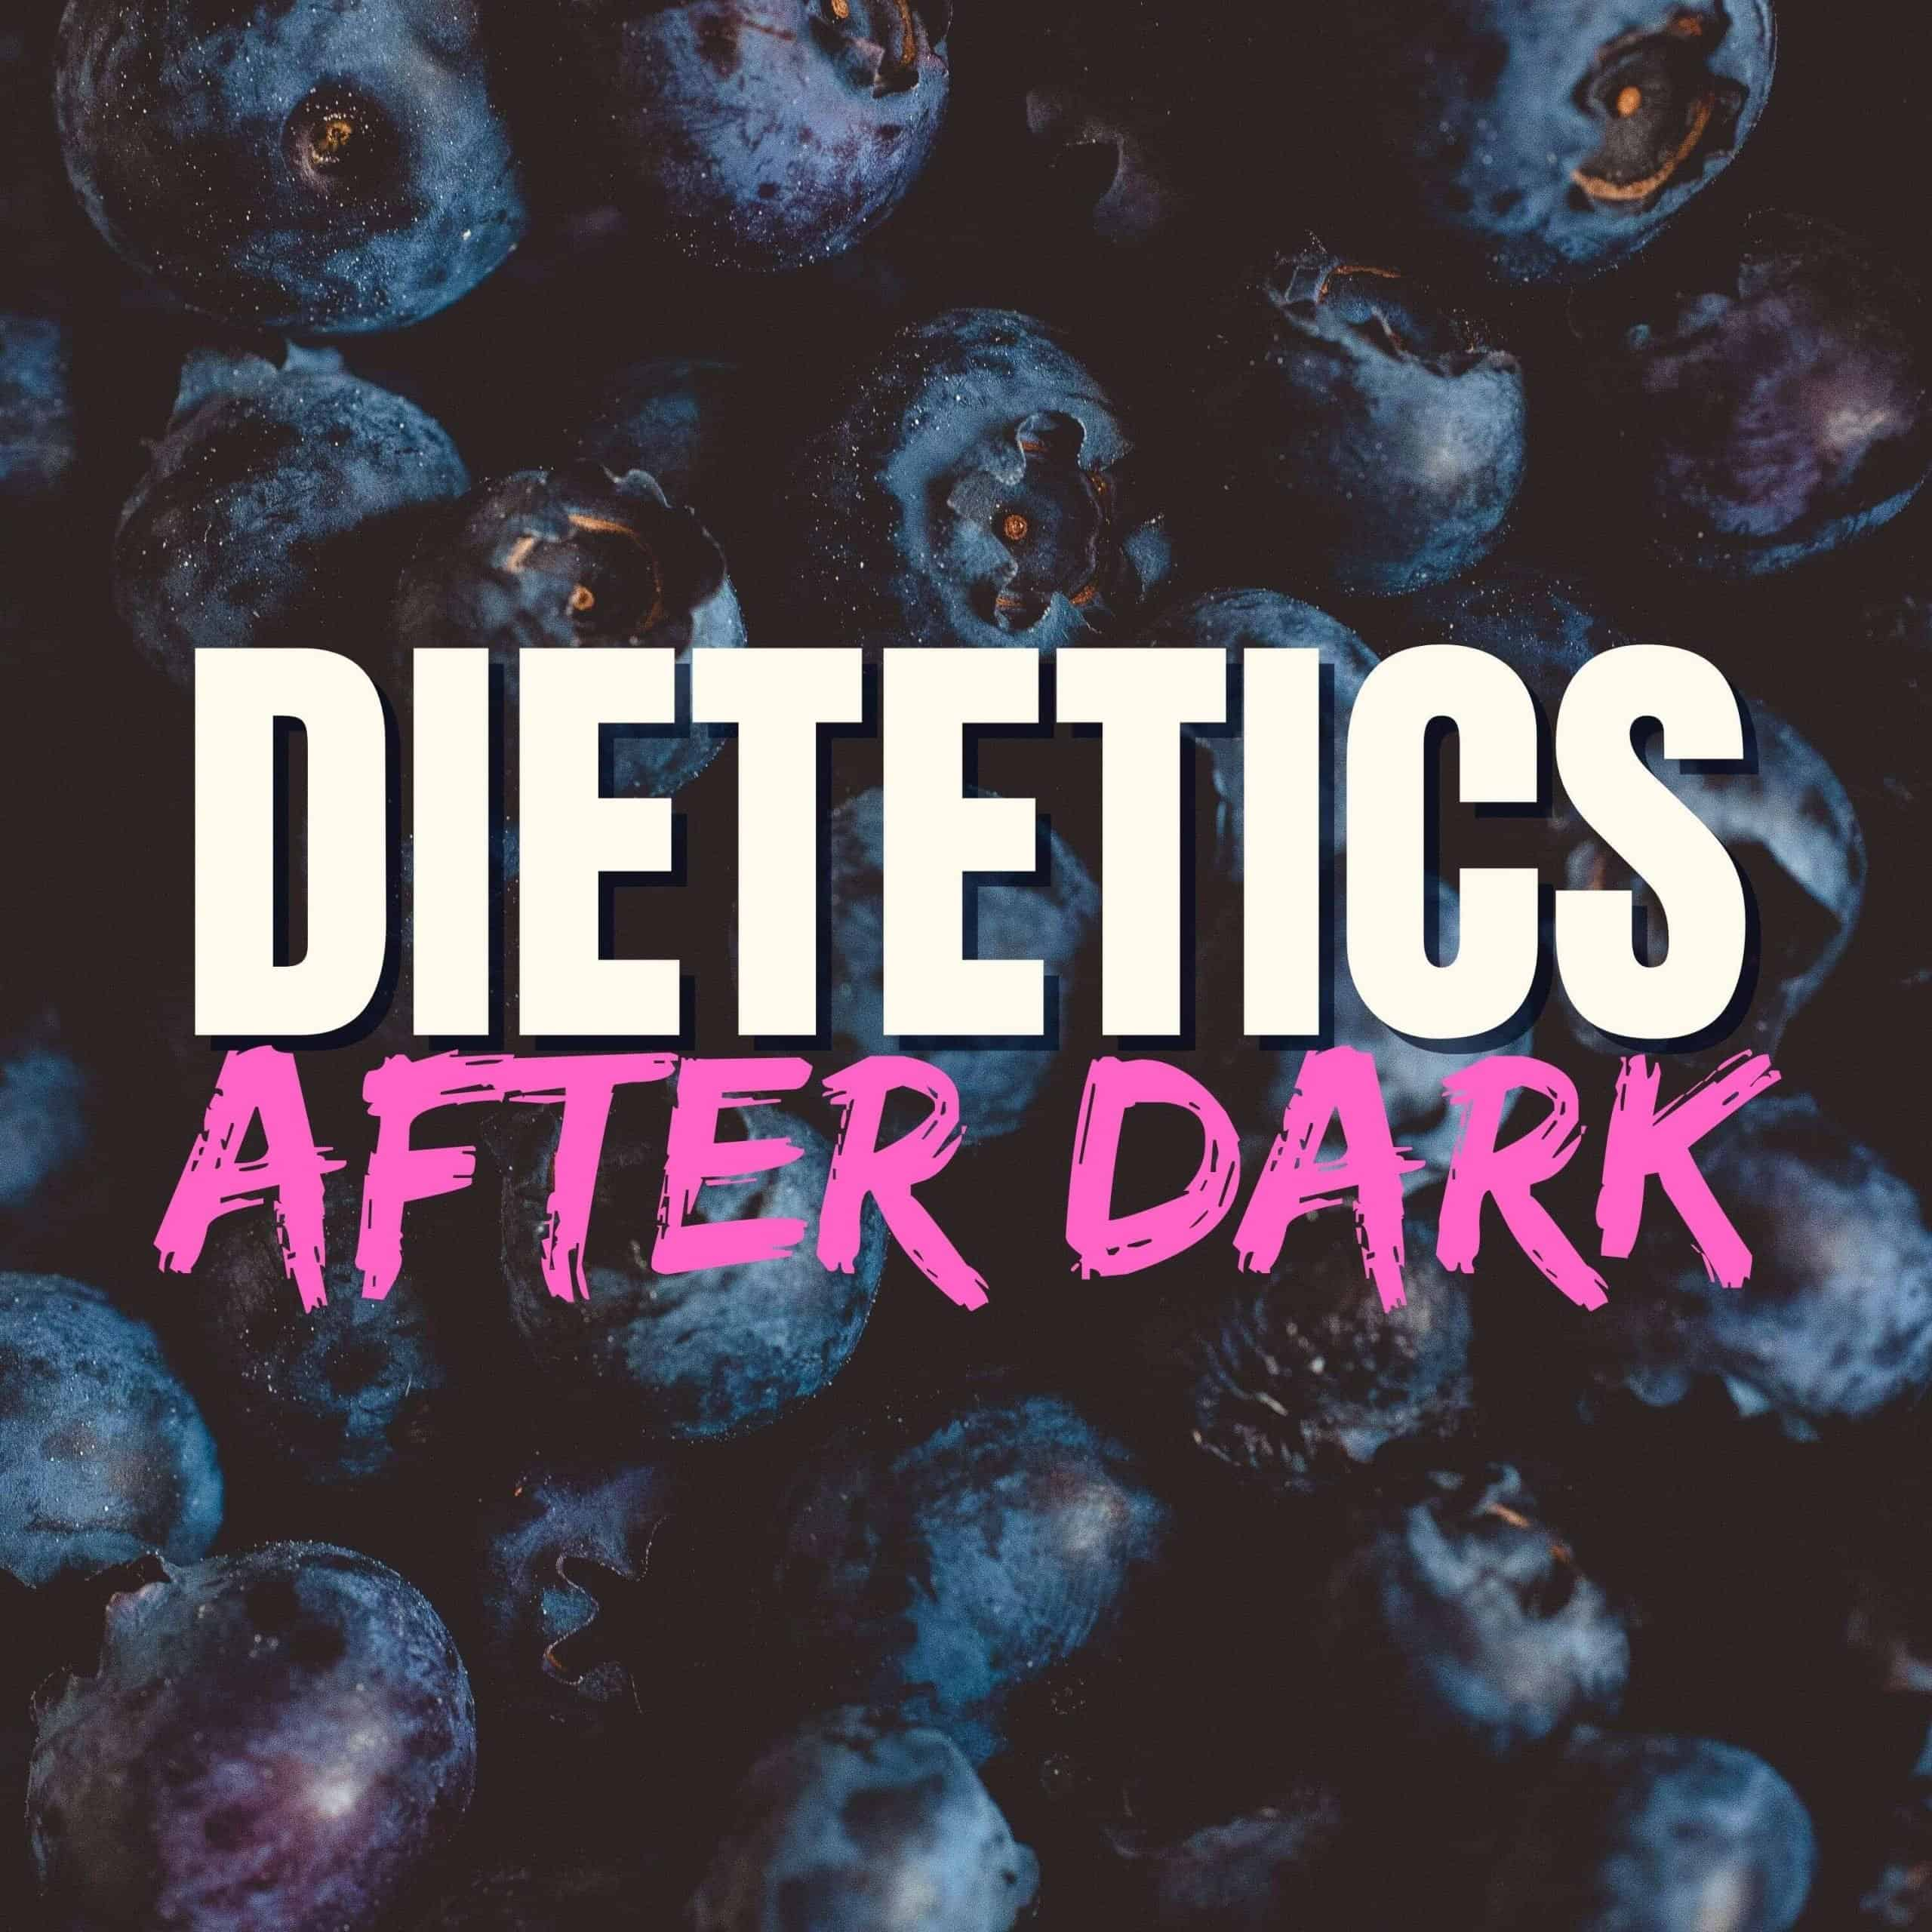 Dietetics After Dark cover art with blueberry background